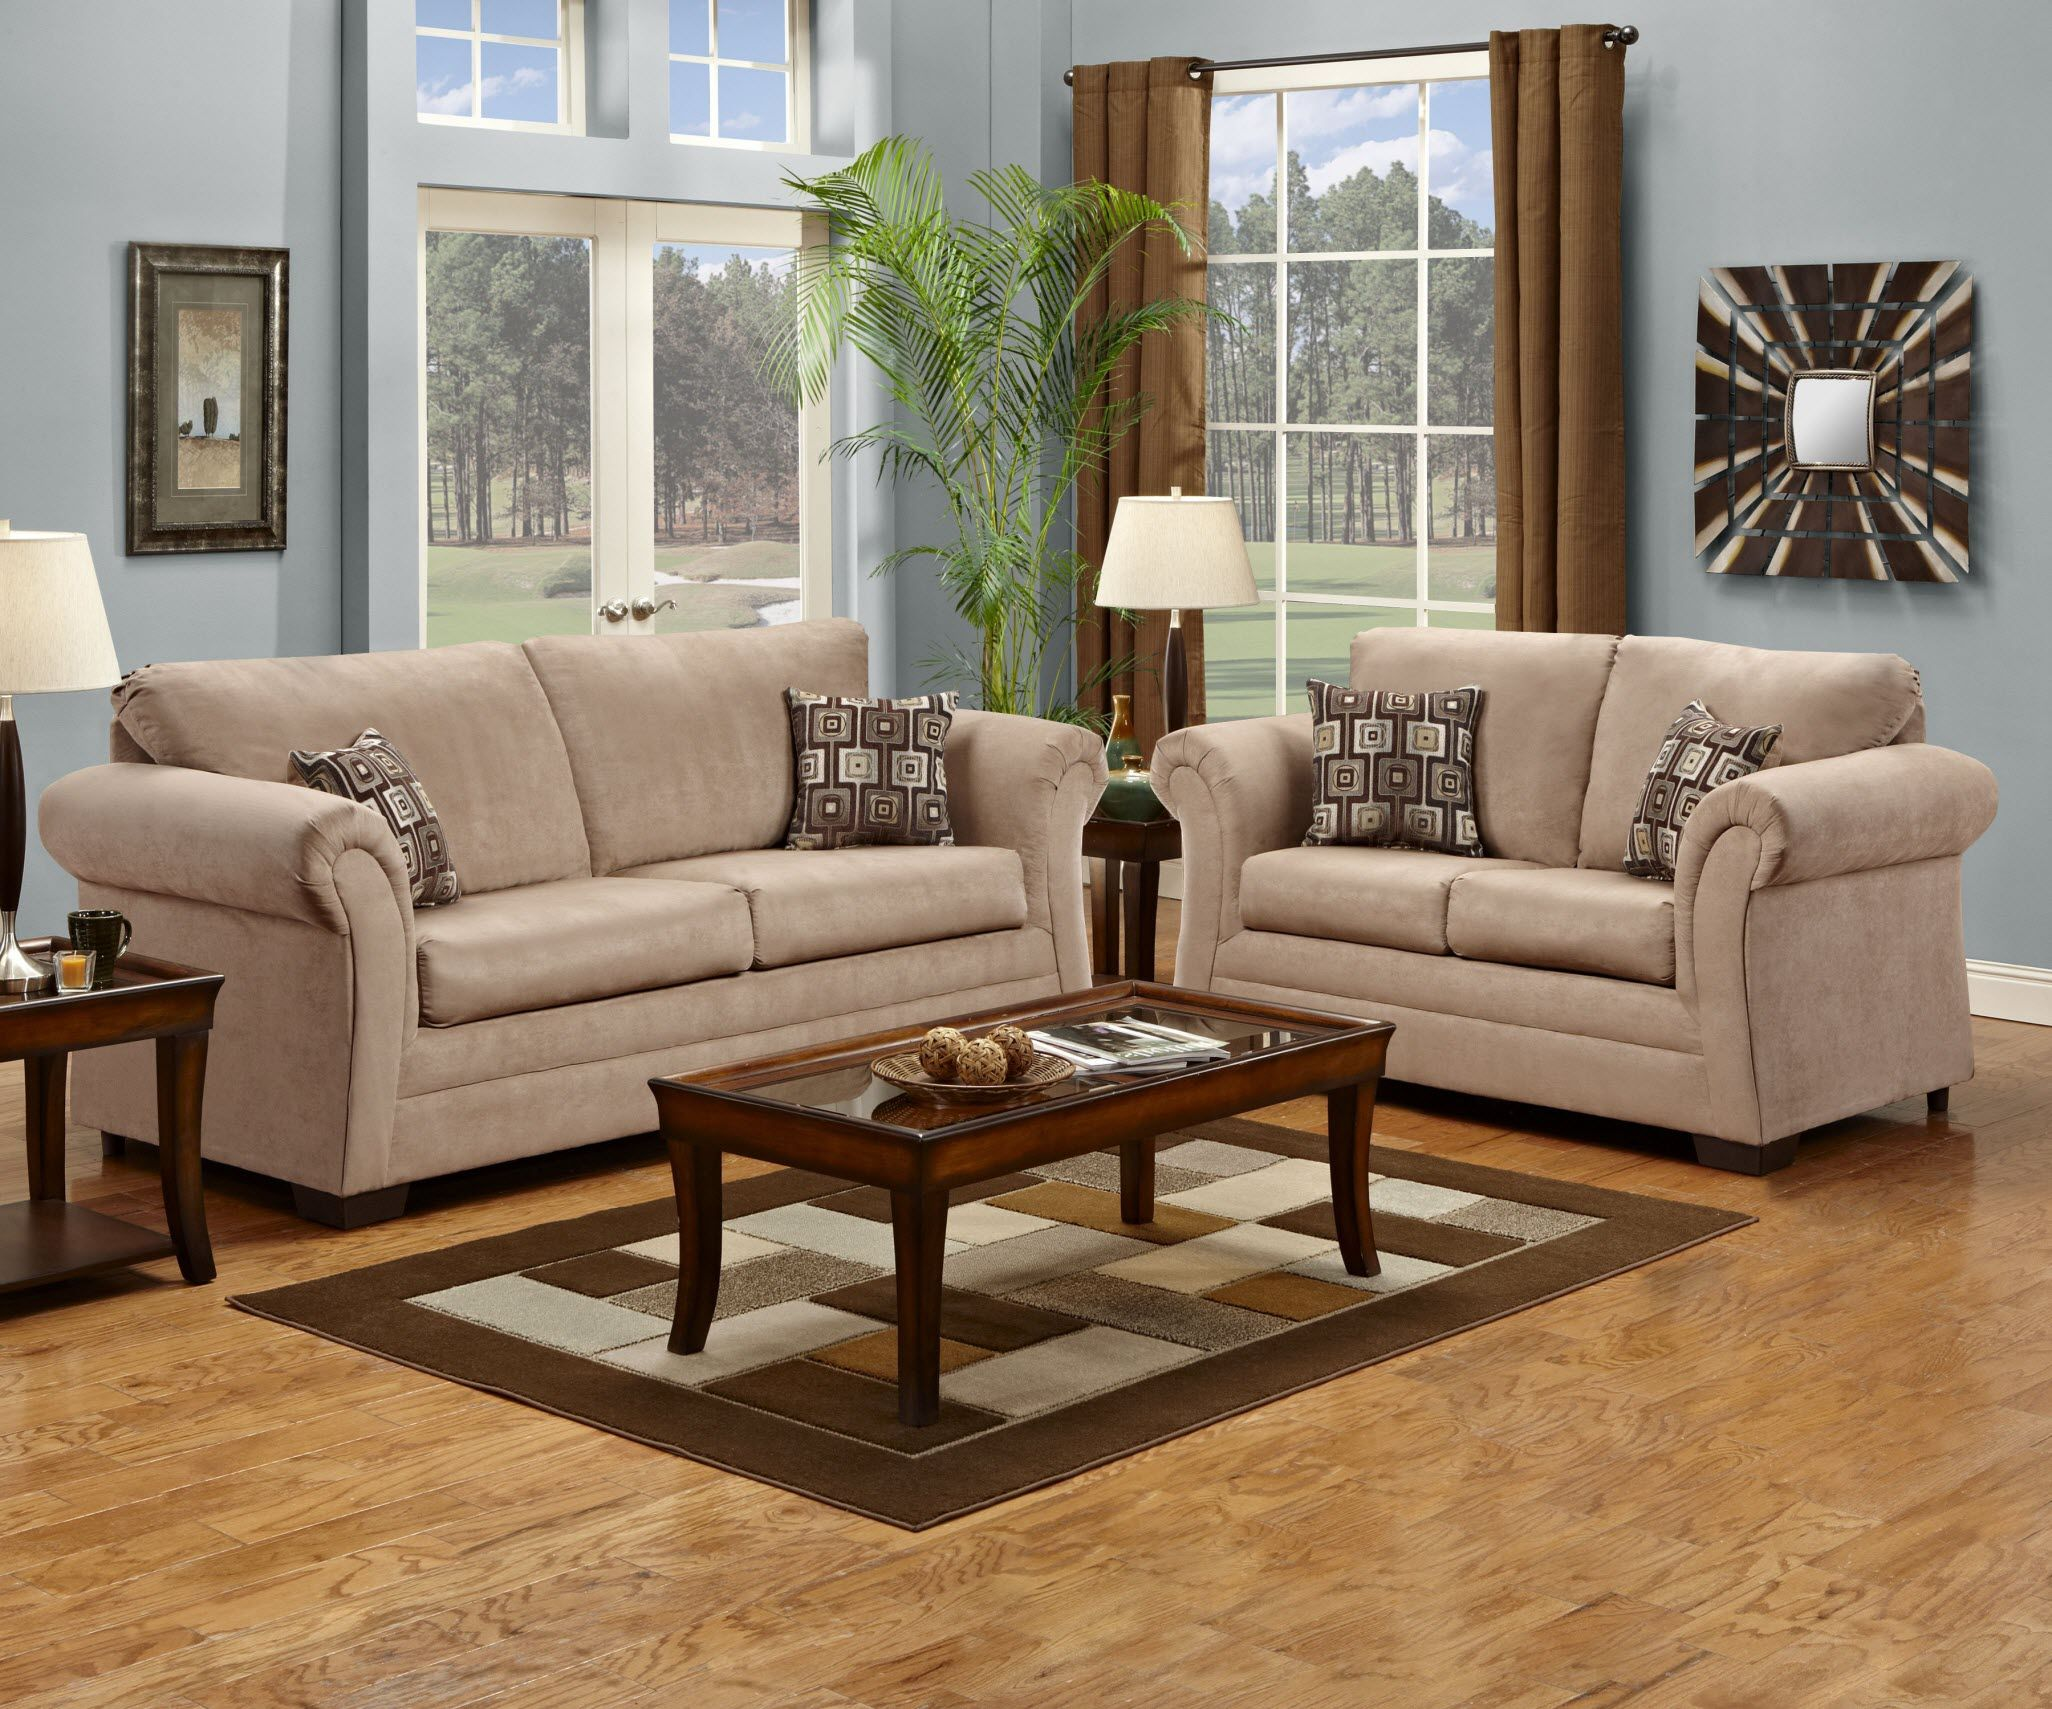 Sofa Taupe Taupe Sofas 26 Best New Sofa Images On Pinterest Sofas